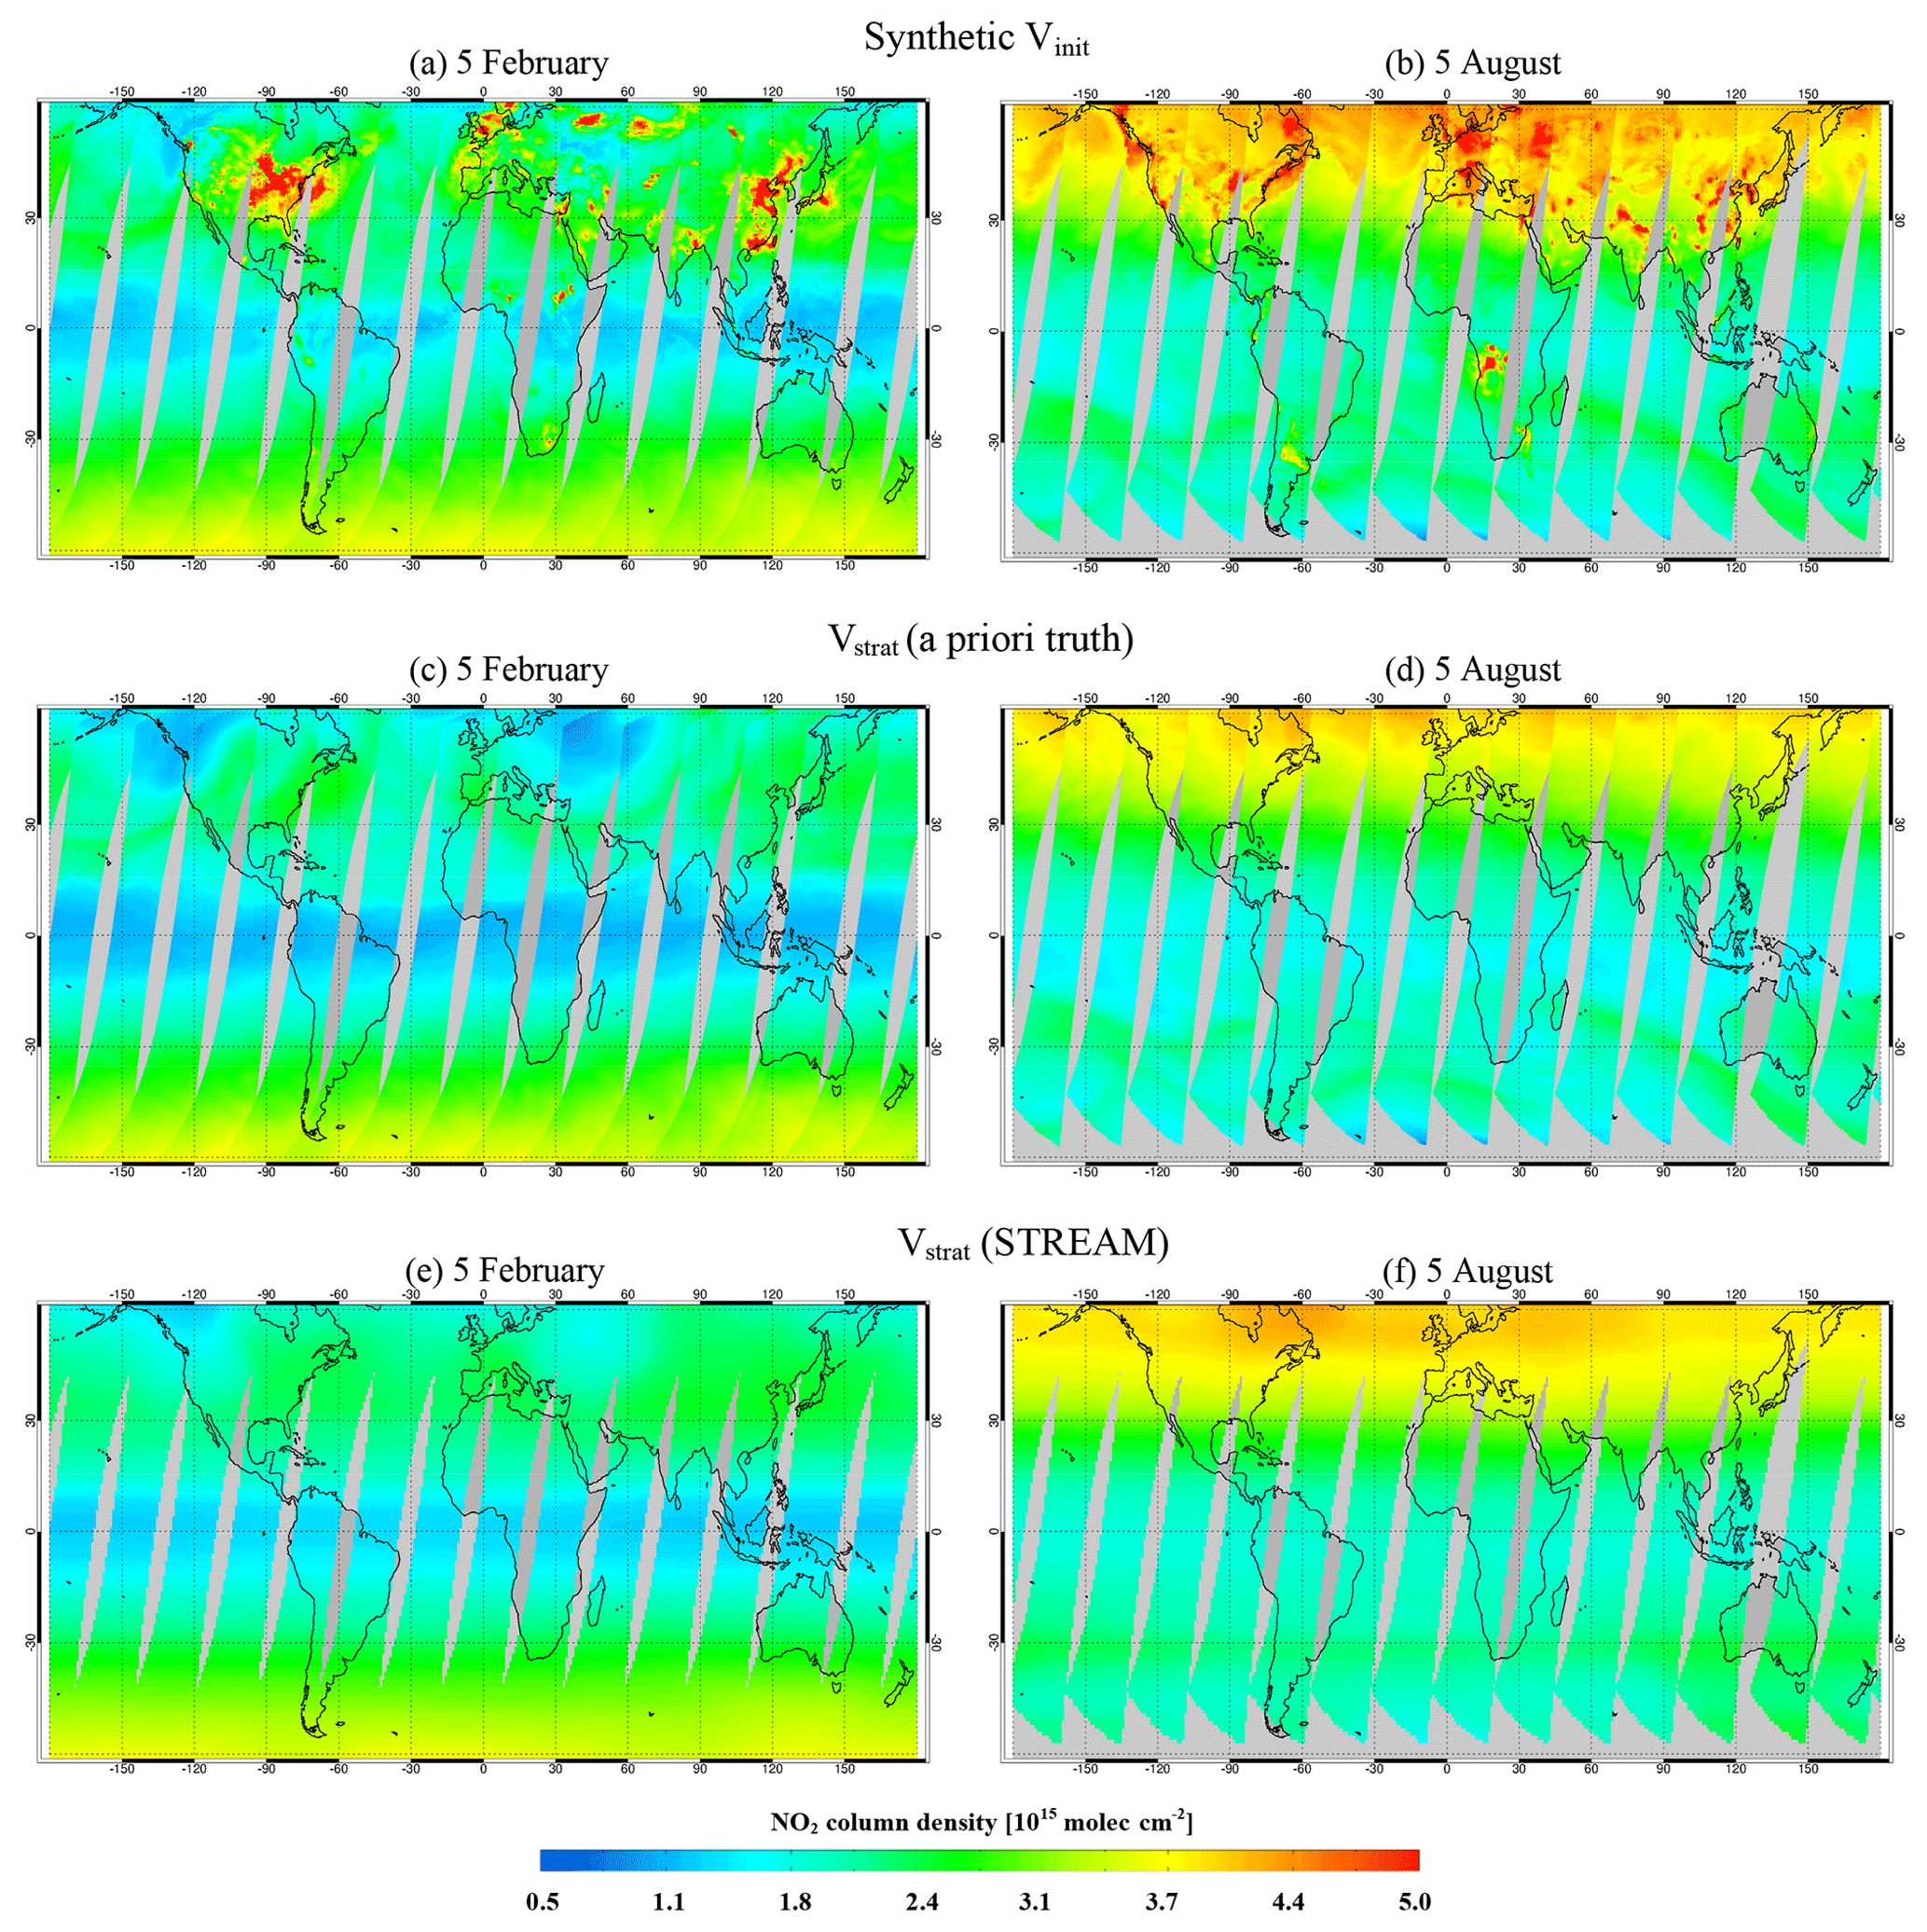 AMT - An improved total and tropospheric NO2 column retrieval for GOME-2